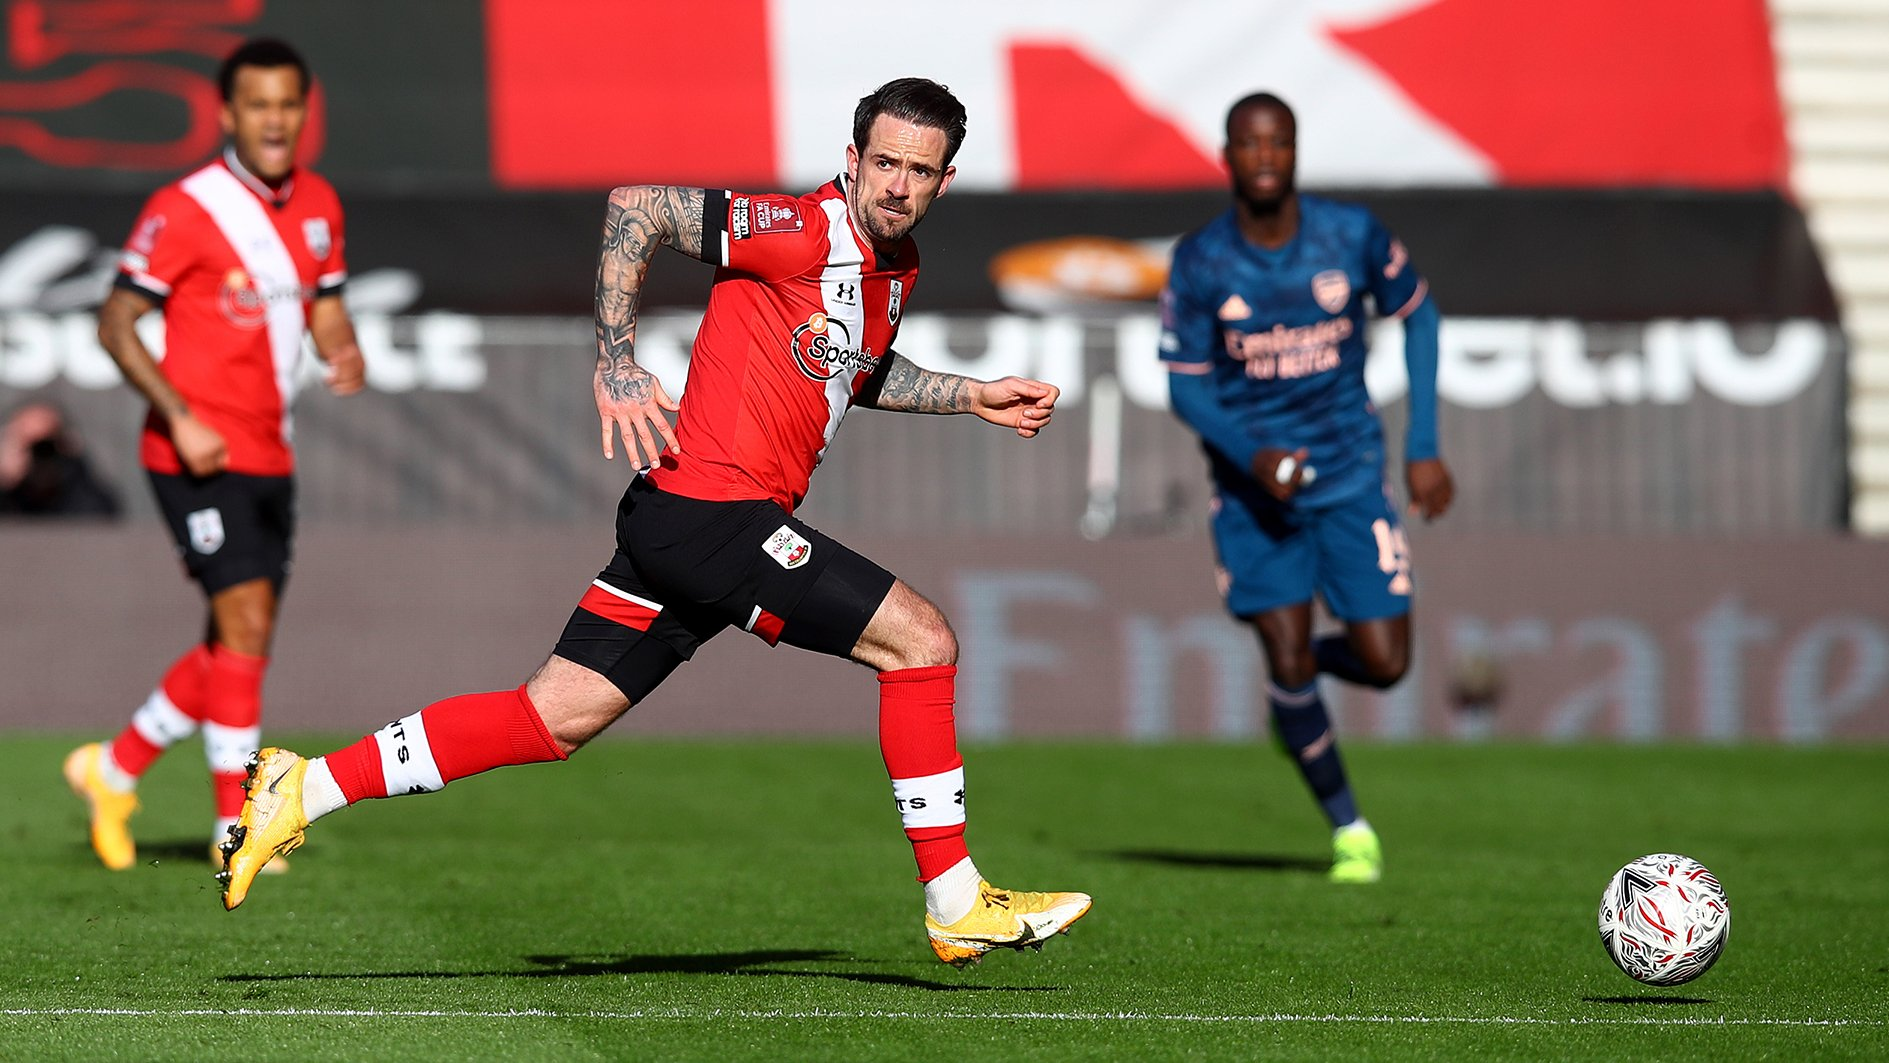 Danny Ings runs with the ball.